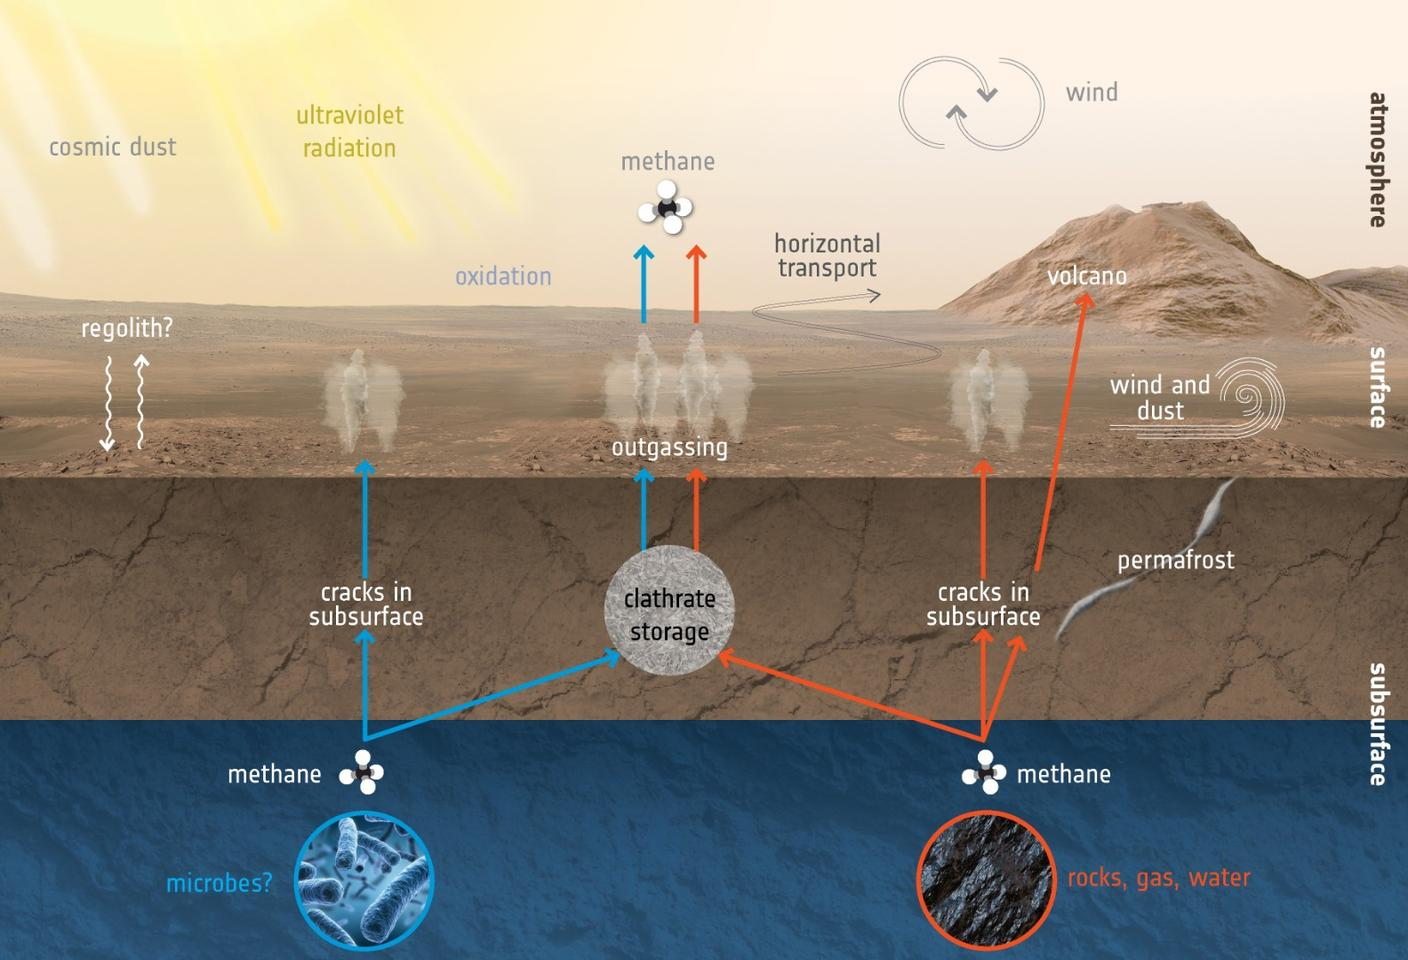 A diagram demonstrating how methane may be produced and released on Mars